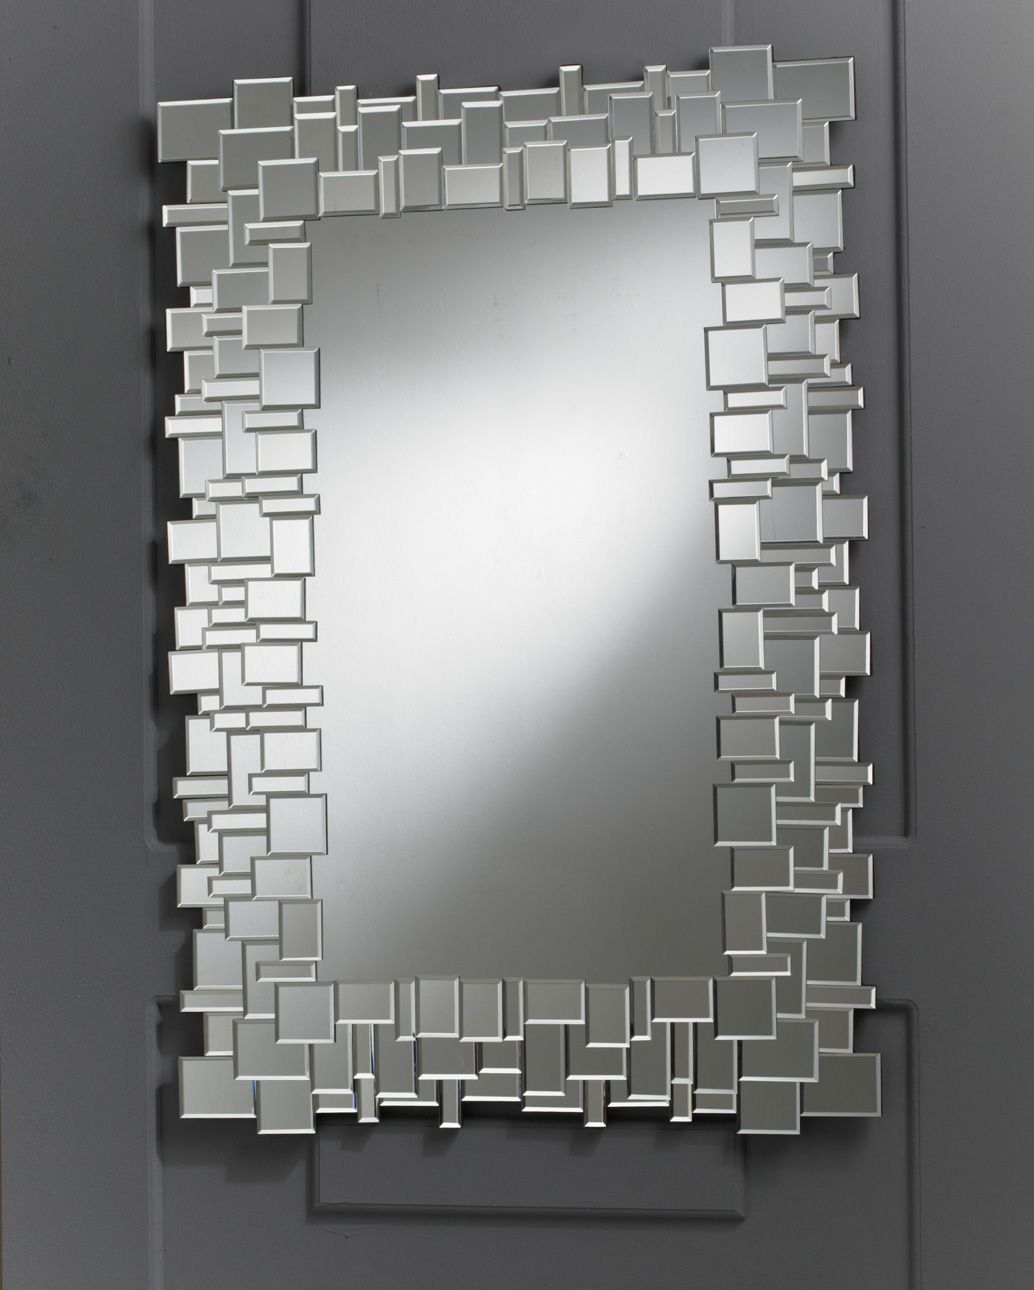 http://www.totalmirrors.com/185-1380-thickbox/pave-multi-facet ... - Adding to the wish list for our Very empty lounge room wall